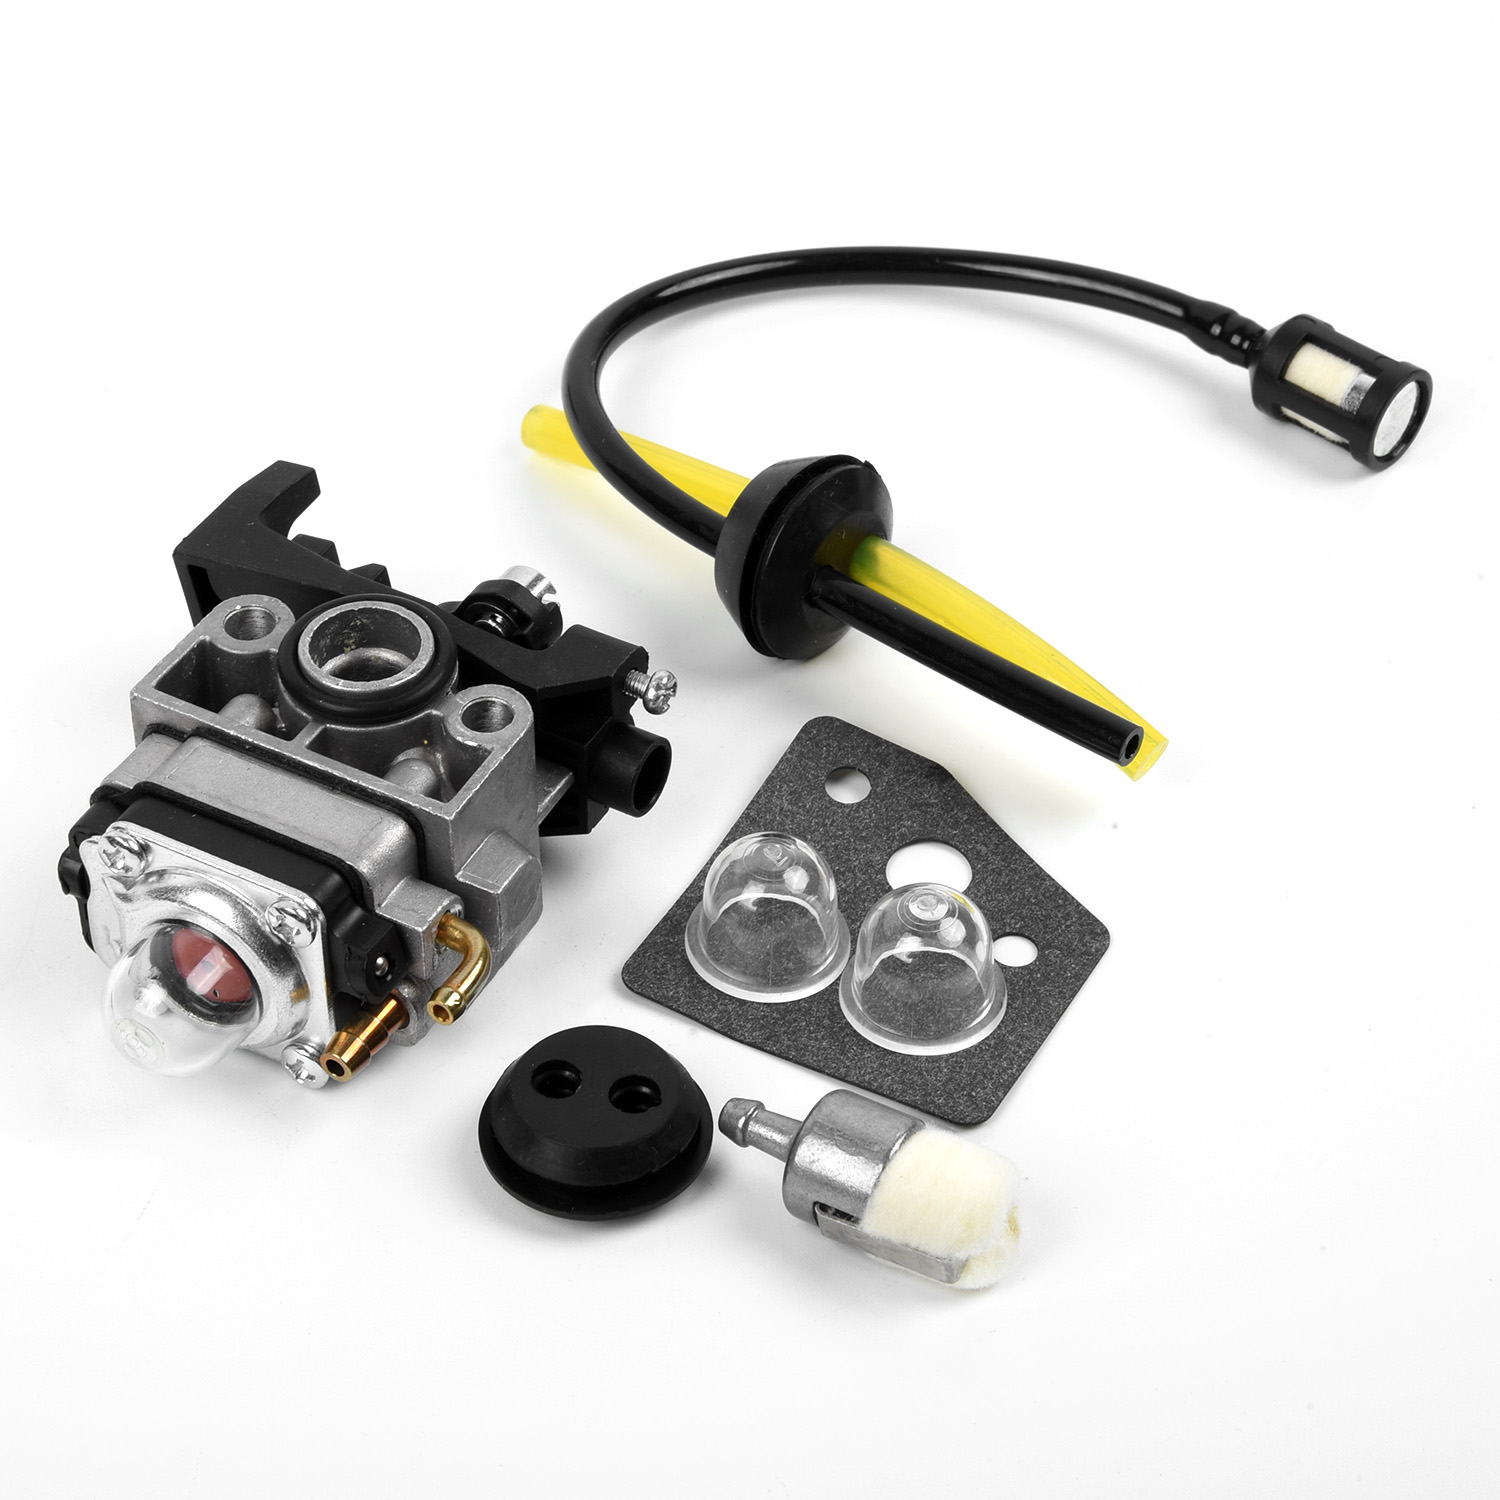 2019 New Replacement For Honda GX35 HHT35 HHT35S 16100-Z0Z-034 25-34 Trimmer Accessories Carburetor